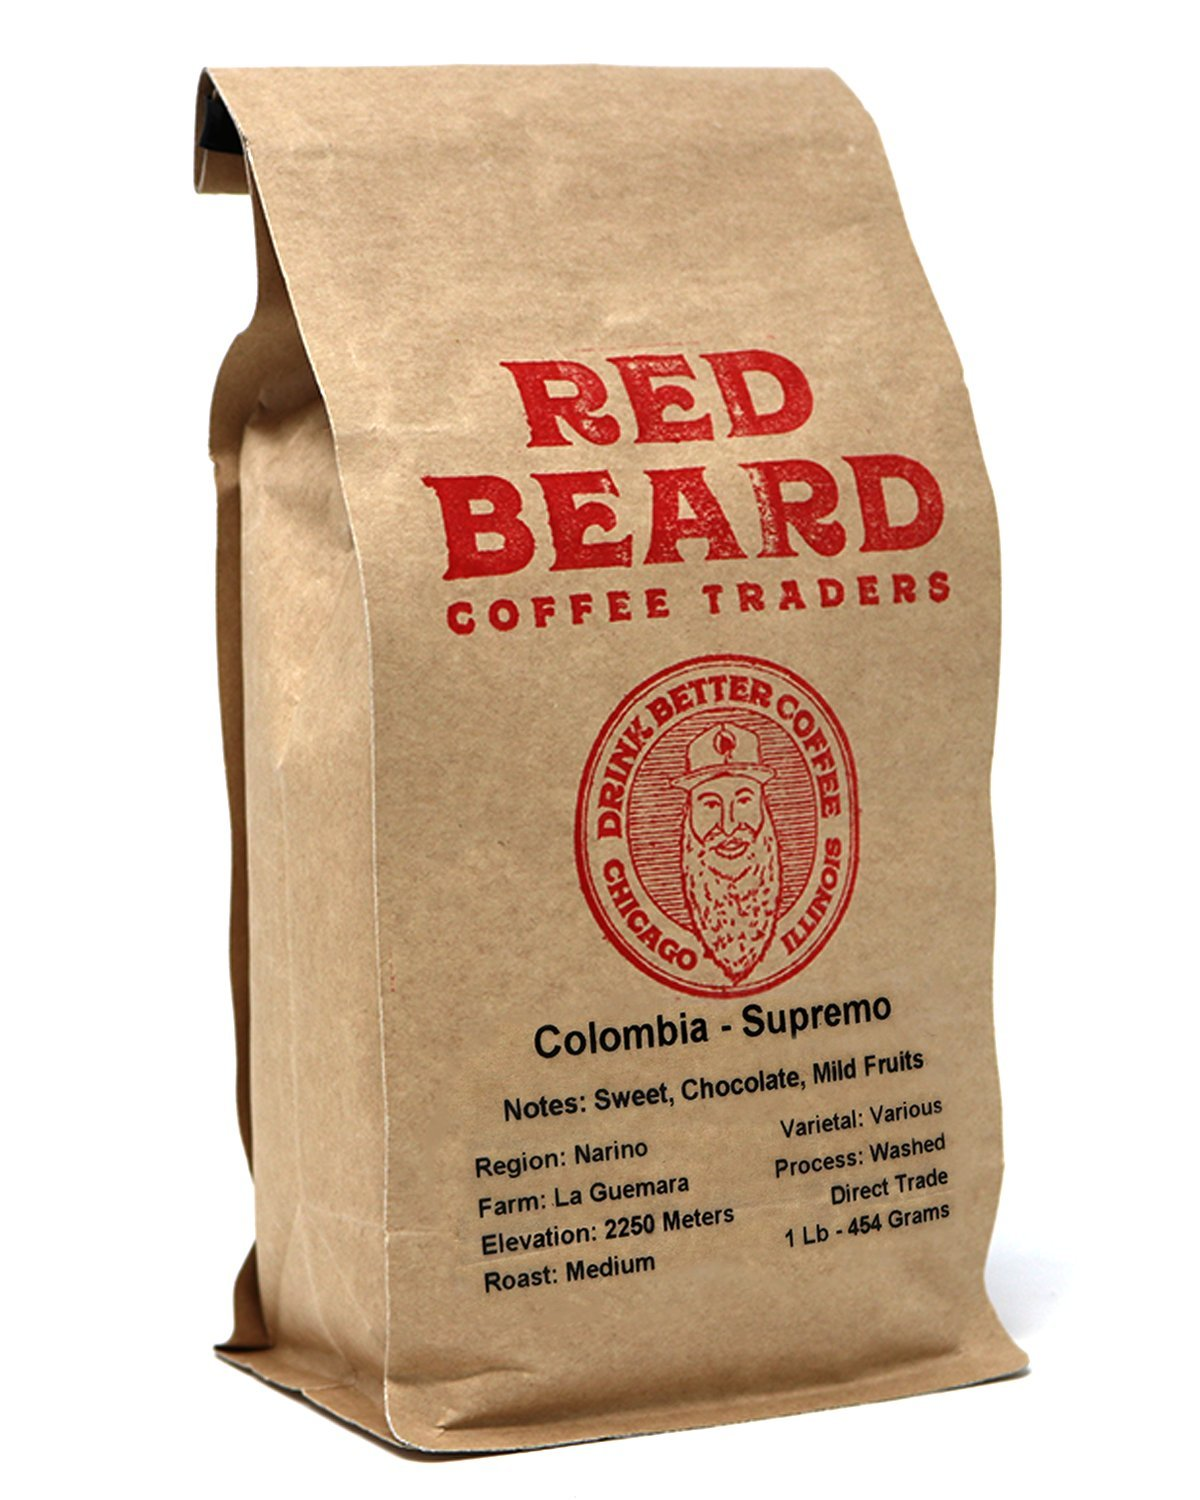 Red Beard Coffee Colombia Supremo Blend Medium Roast 1lb Mixture of Citric Flavors Fruit Flavors Herbal Taste Chocolate Notes and Caramel Sweetness